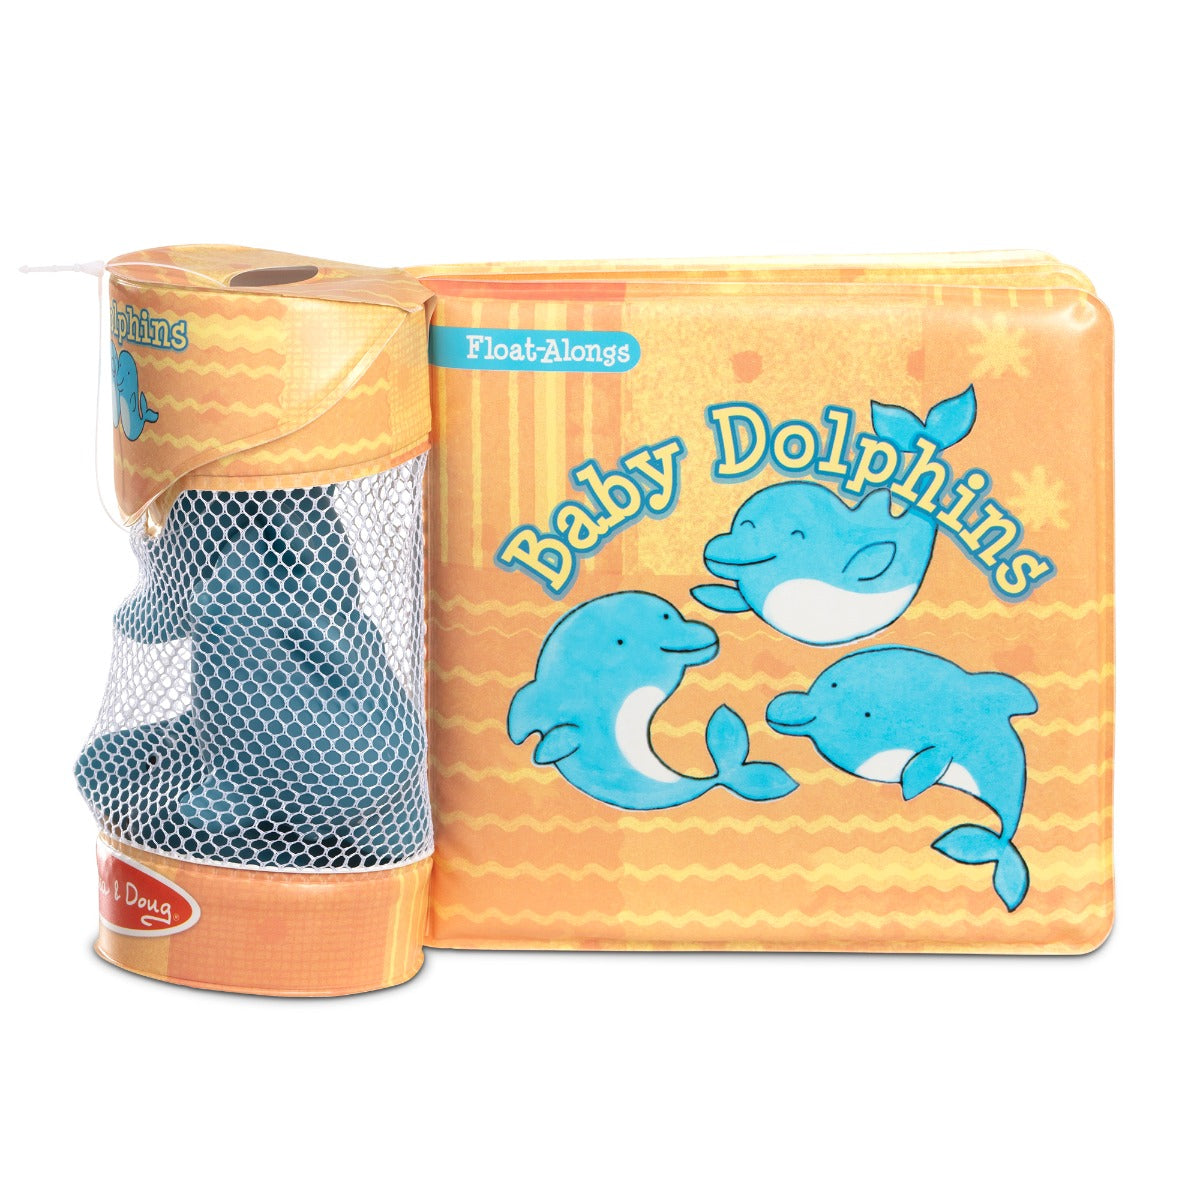 Melissa and Doug Float Alongs Baby Dolphins bath toys